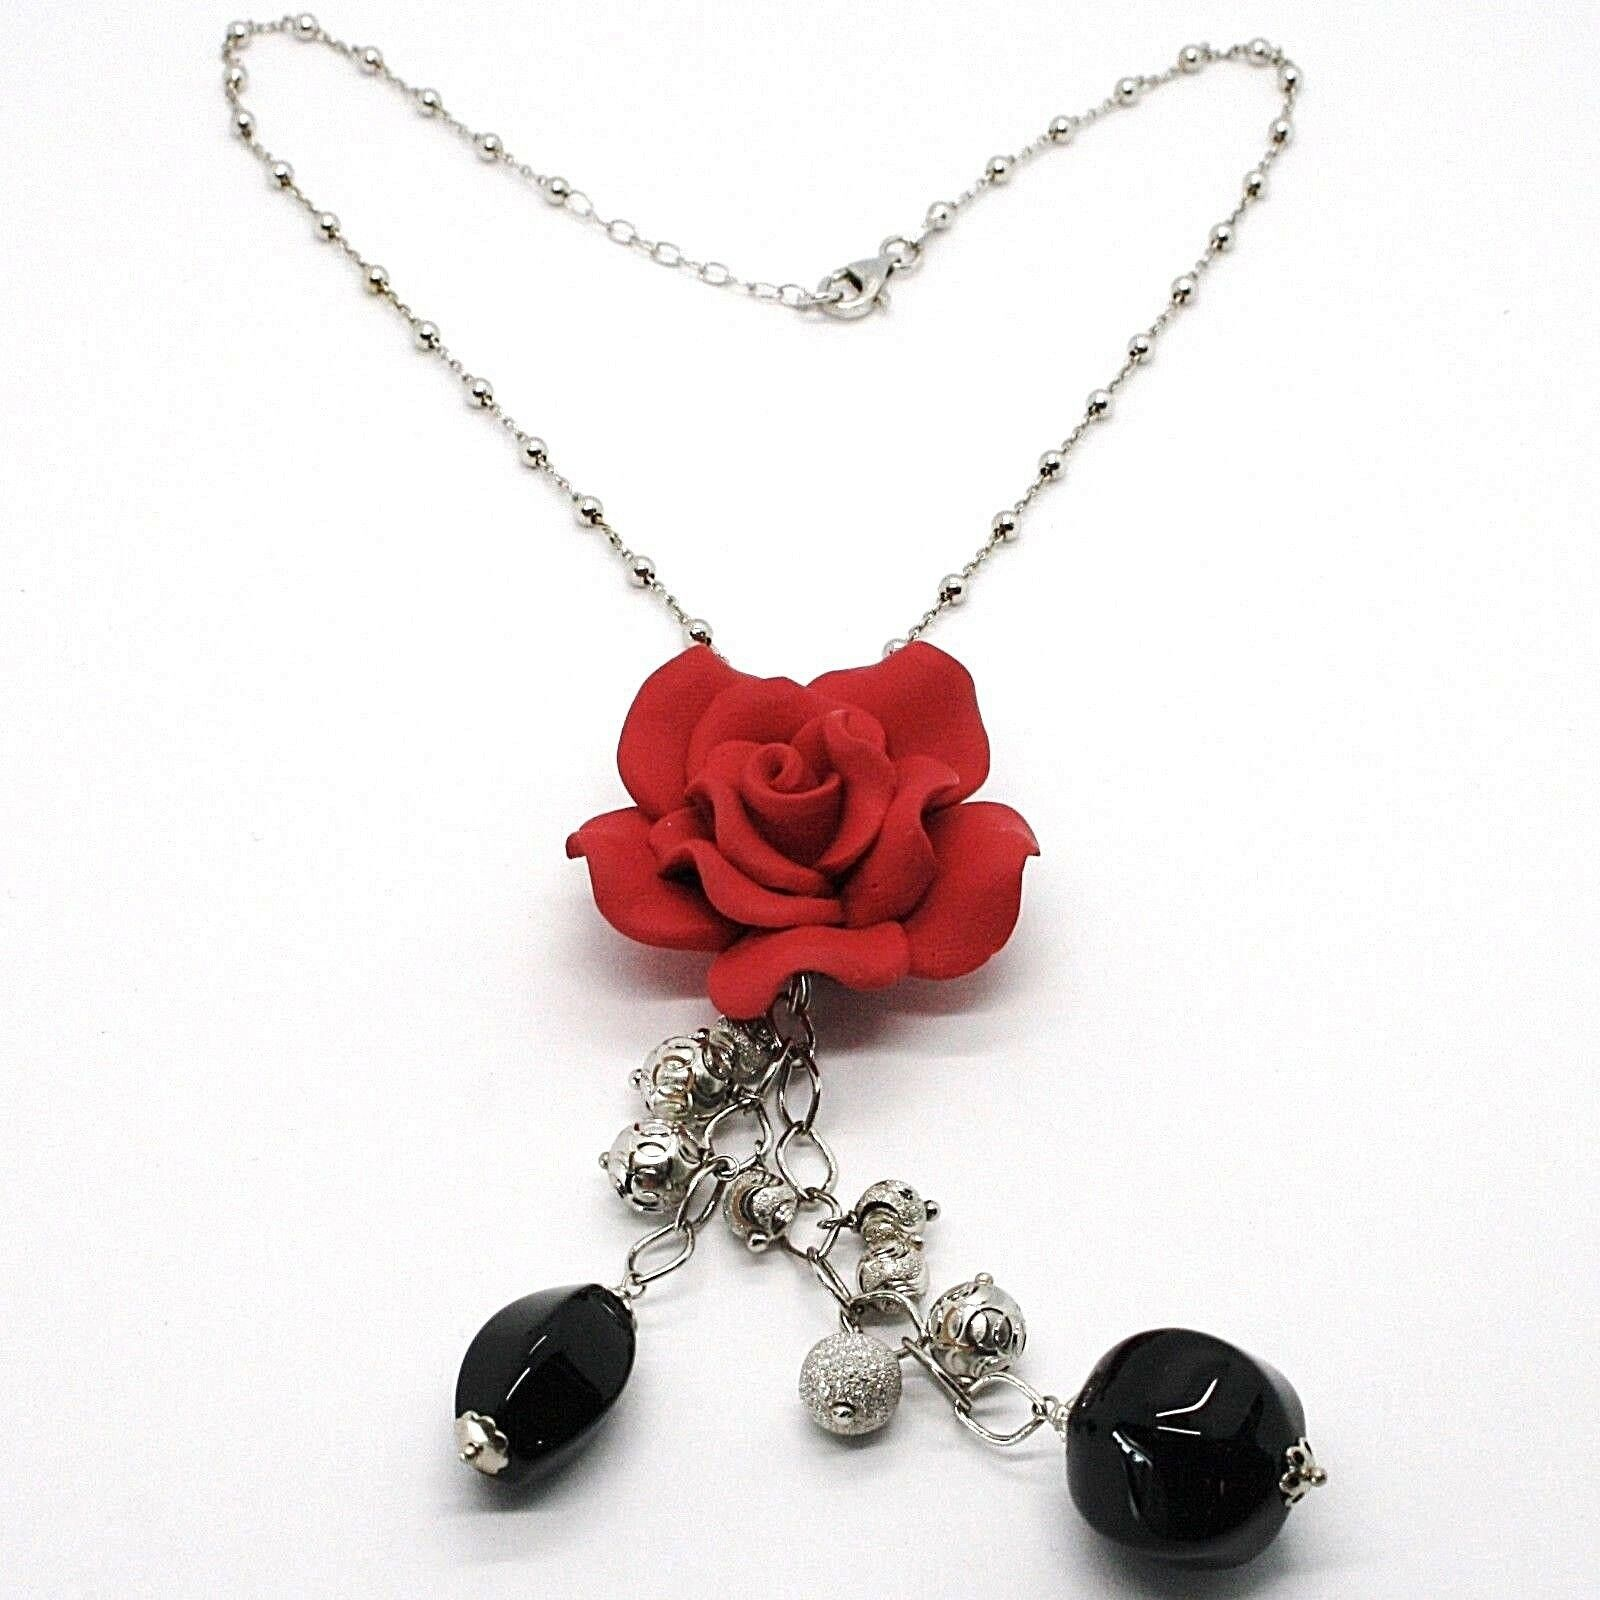 Necklace Silver 925, Onyx Black, Pink Red, Flower, Chain Balls